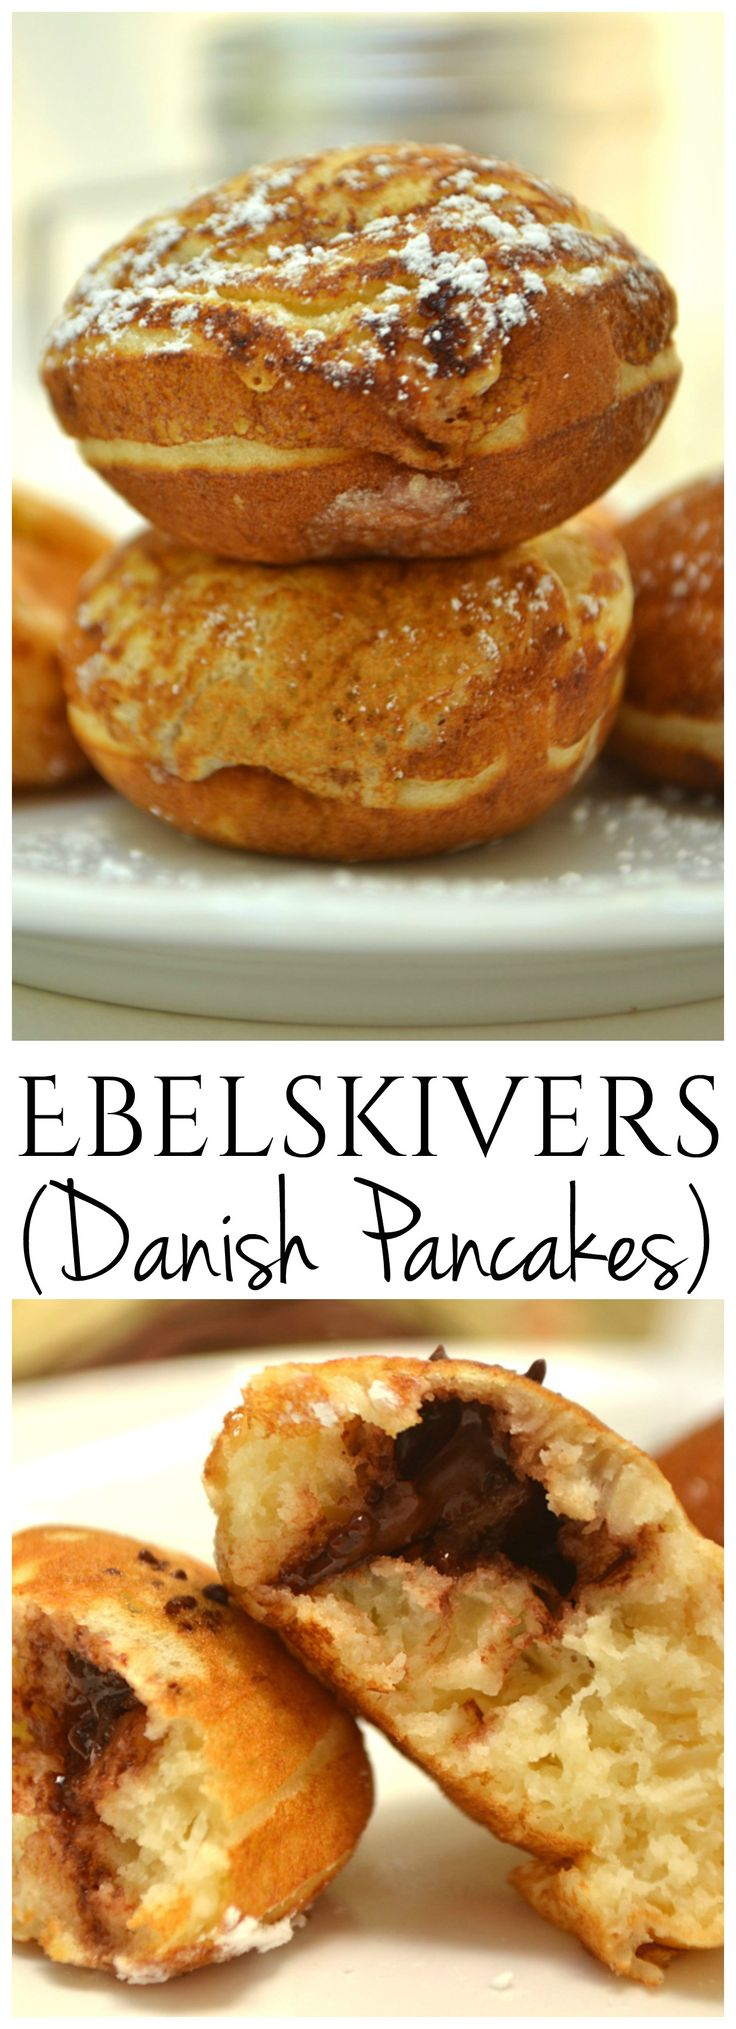 Ebelskivers - A Danish pancake bite filled with jams or chocolate chips - Wonderful treat for breakfast or dessert   www.craftycookingmama.com